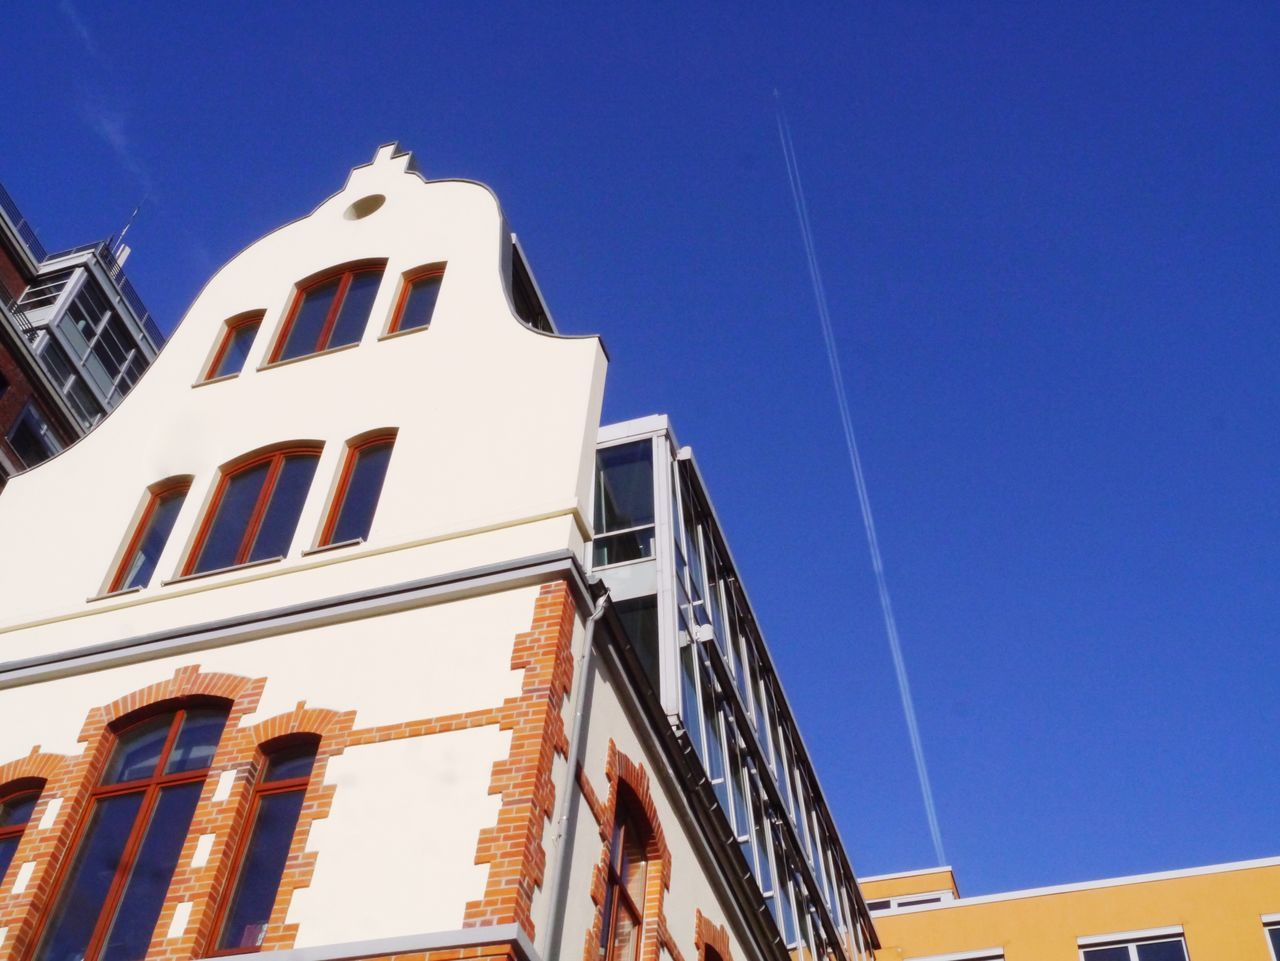 I took this image whilst on an early weekend photo walk. The location is the Medienhafen in Düsseldorf. The colour of the building against the clear blue sky is a lovely contrast. The line in the sky from an aero plane makes for a nice touch. Düsseldorf Color Cityscapes Blue Sky Sunny Day Architecture Buildings Angles Lines Brickwork